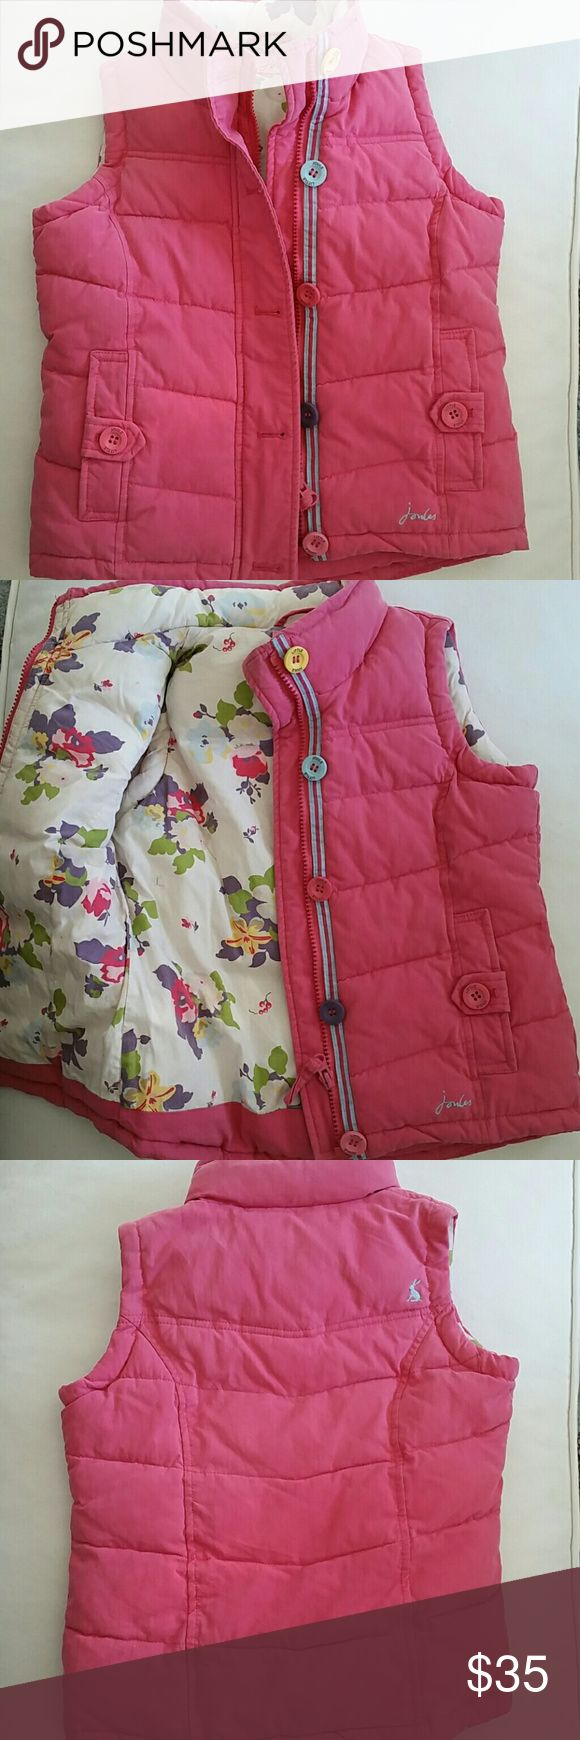 Joules Gilet Vest padded pink w/ floral lining Joules Gilet Vest padded pink w/ floral lining and cute button detail.  This vest is very warm,  super adorable, love the floral lining! In good condition, has been worn, but no stains, still quite lovely! Joules Jackets & Coats Vests